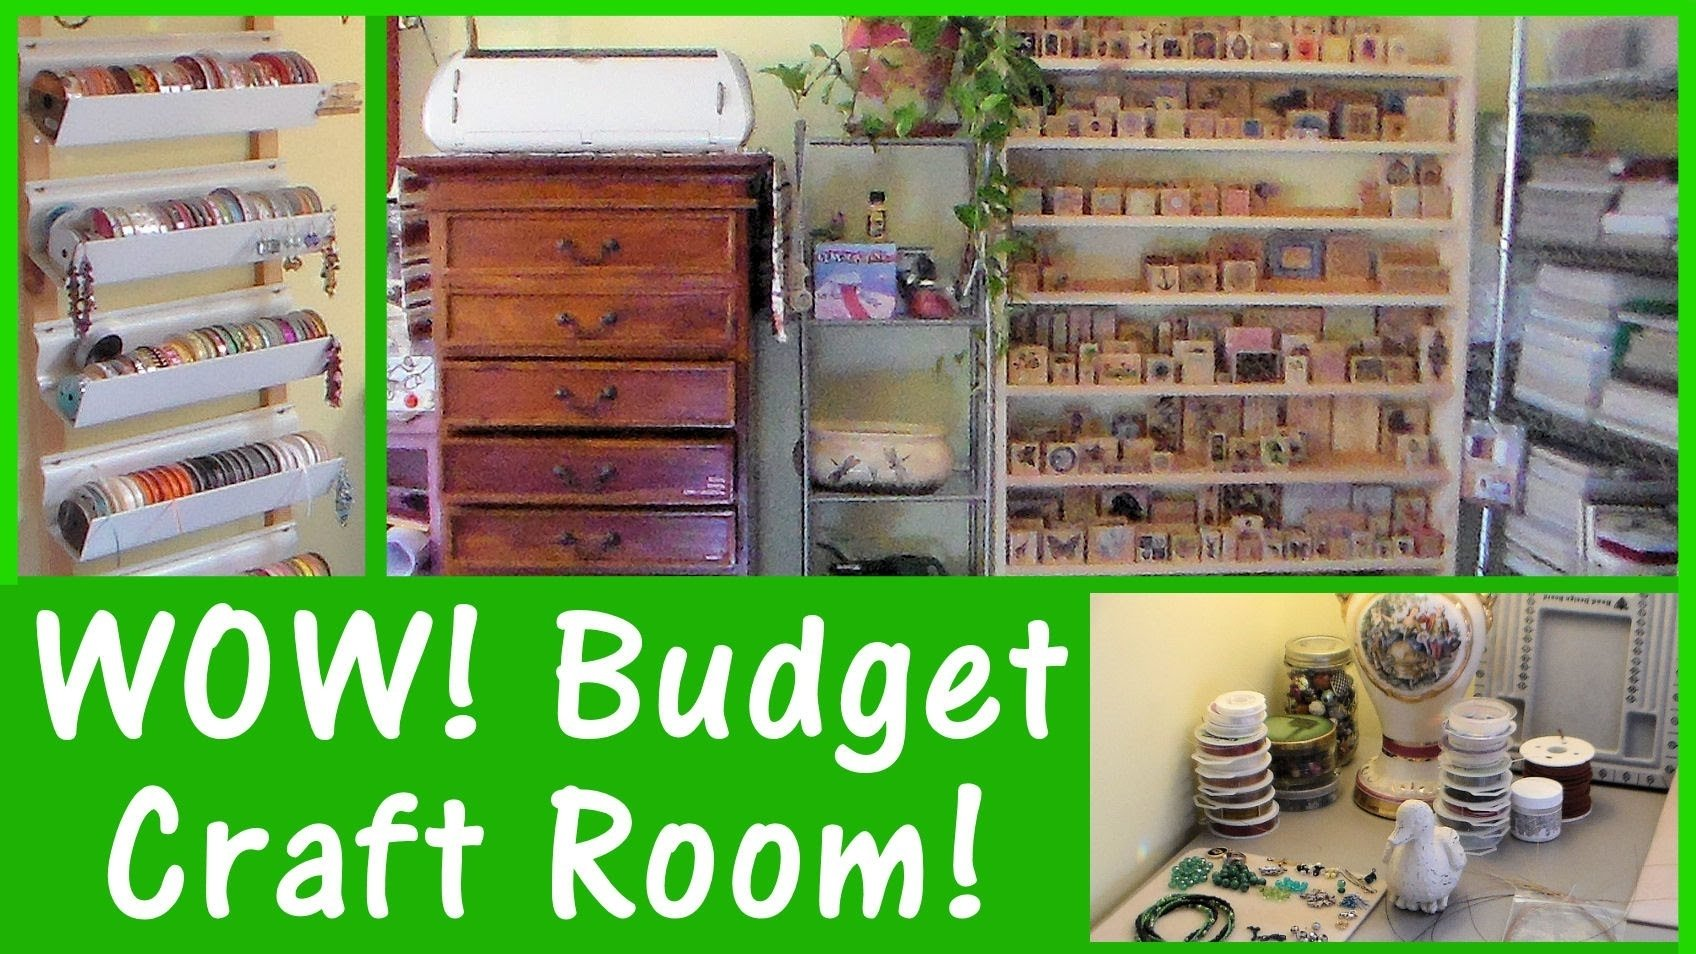 10 Great Money Saving Ideas For Home new home real craft room set up money saving tips ideas youtube 2